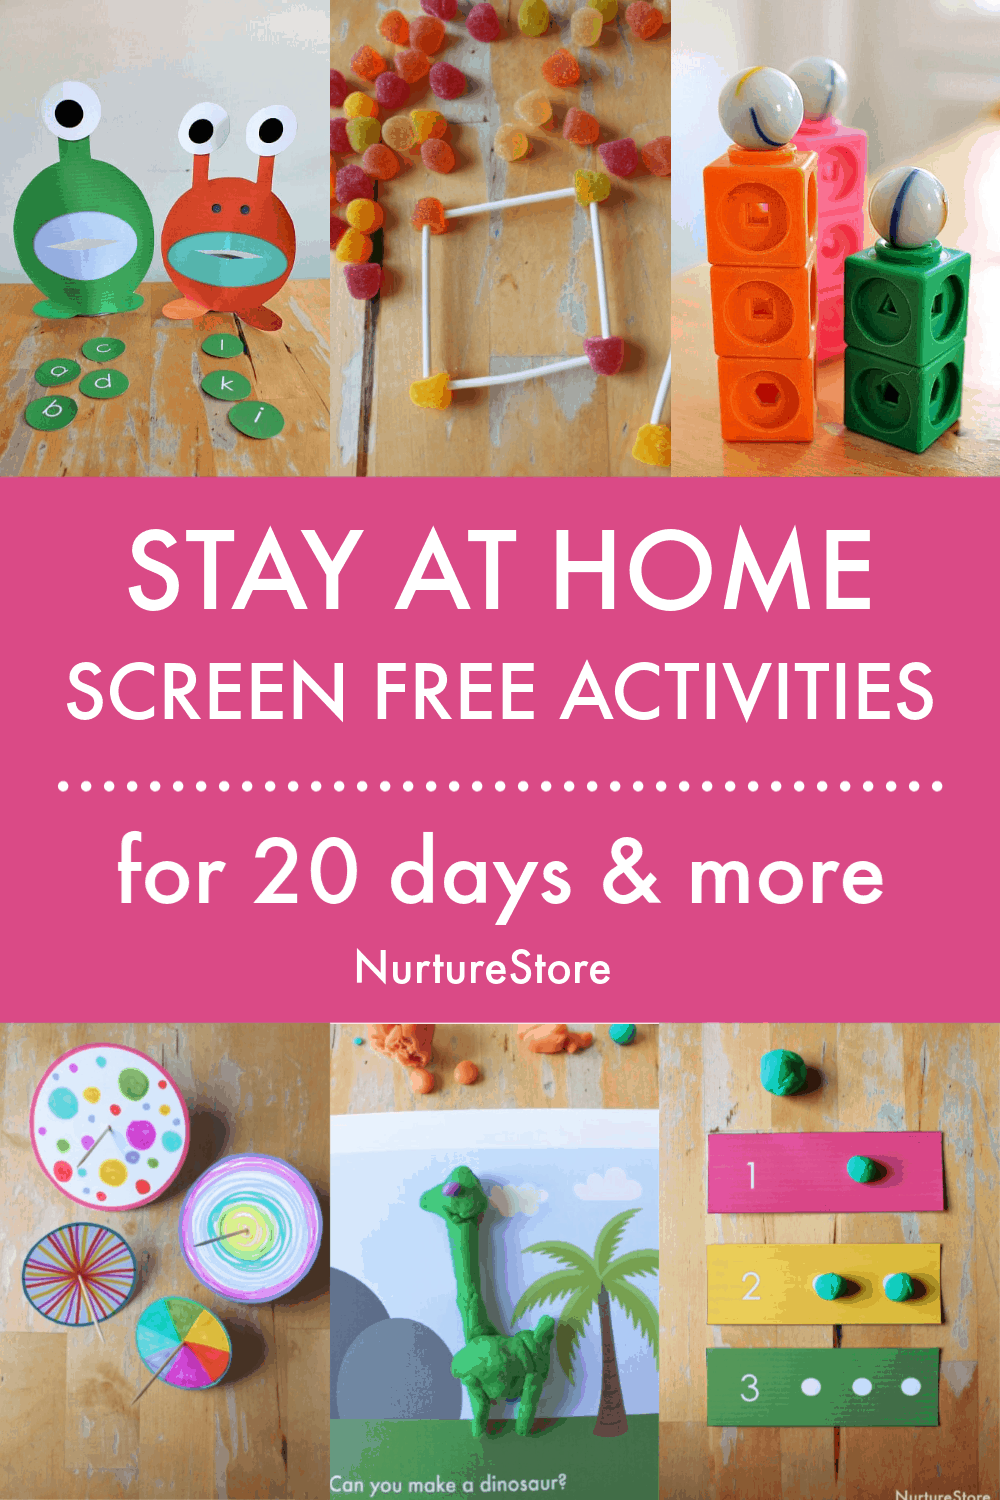 Stay at home screen free activities for children